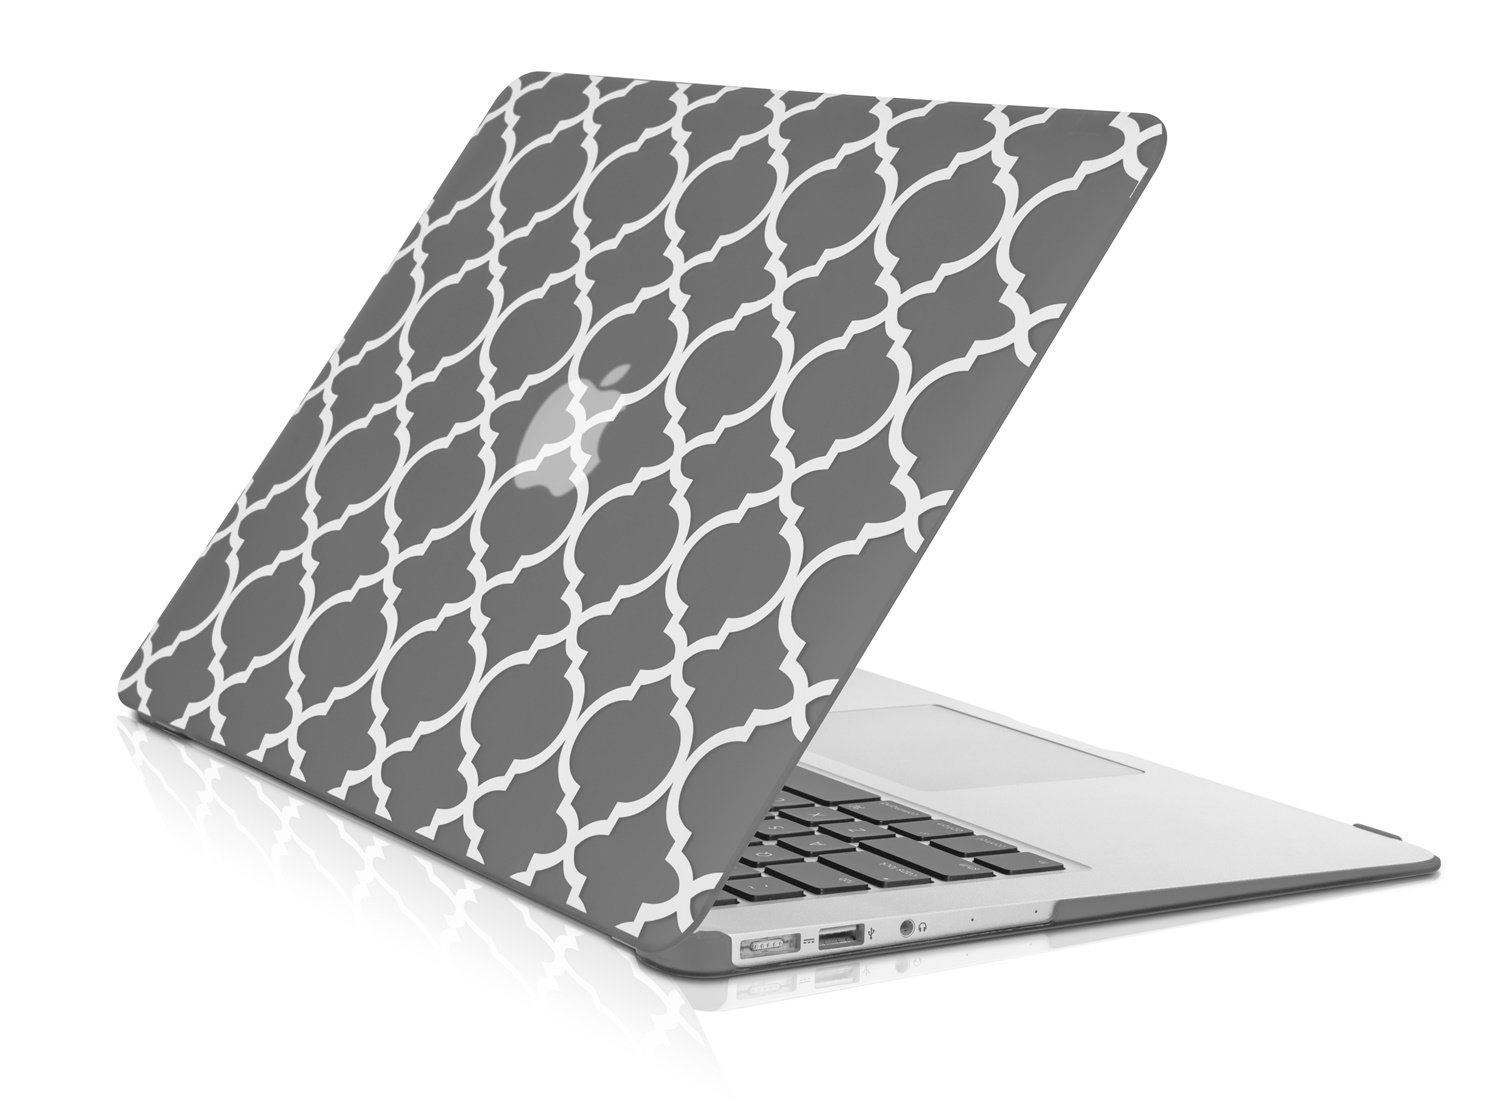 TopCase Quatrefoil/Moroccan Trellis Gray Ultra Slim Light Weight Rubberized Hard Case Cover for MacBook Air 11'' Model: A1370 and A1465